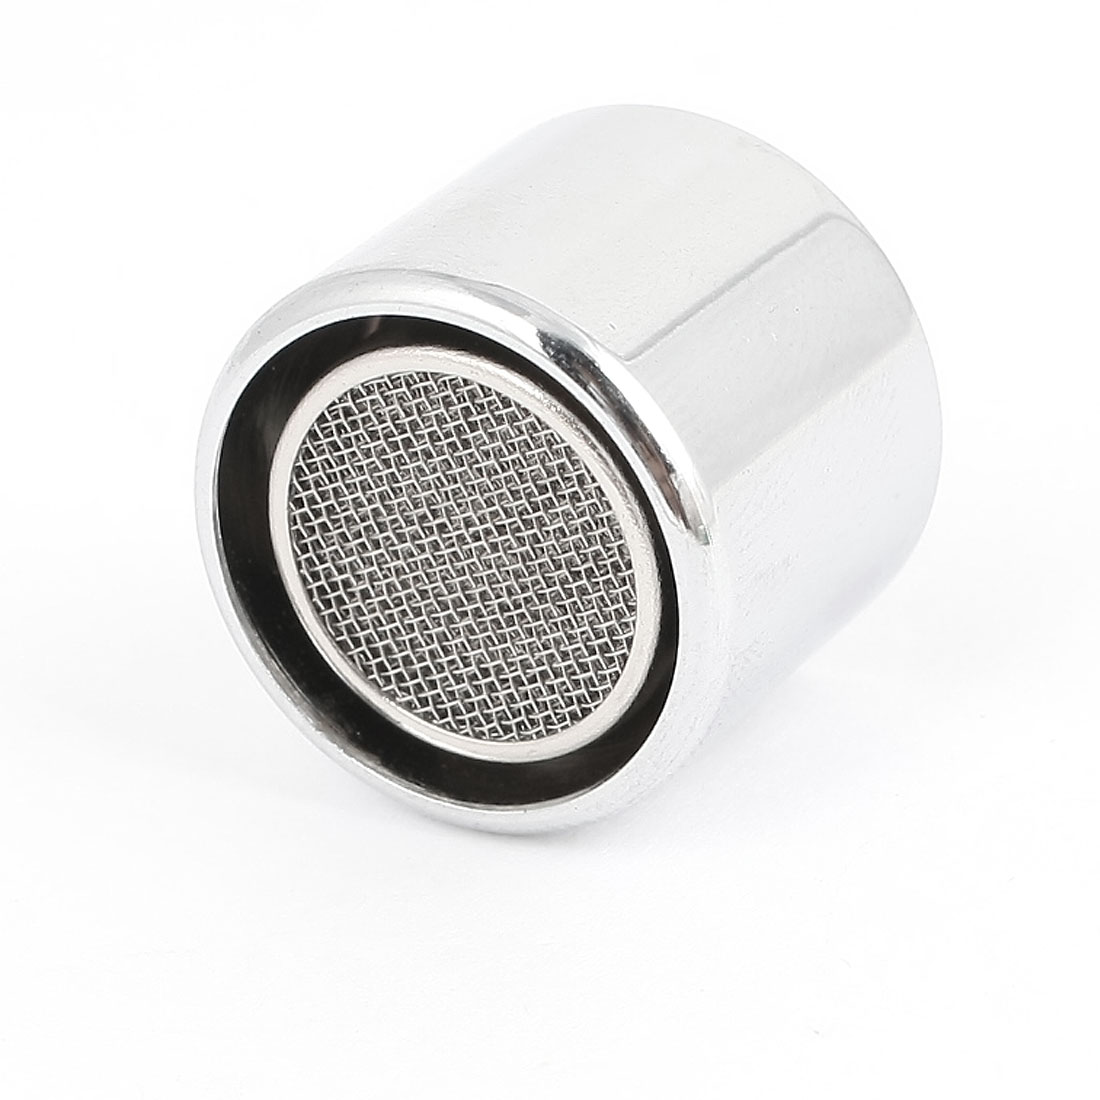 19mm Thread Silver Tone Water Saving Faucet Tap Filtering Net Spout Aerator Nozzle w Seal Gasket